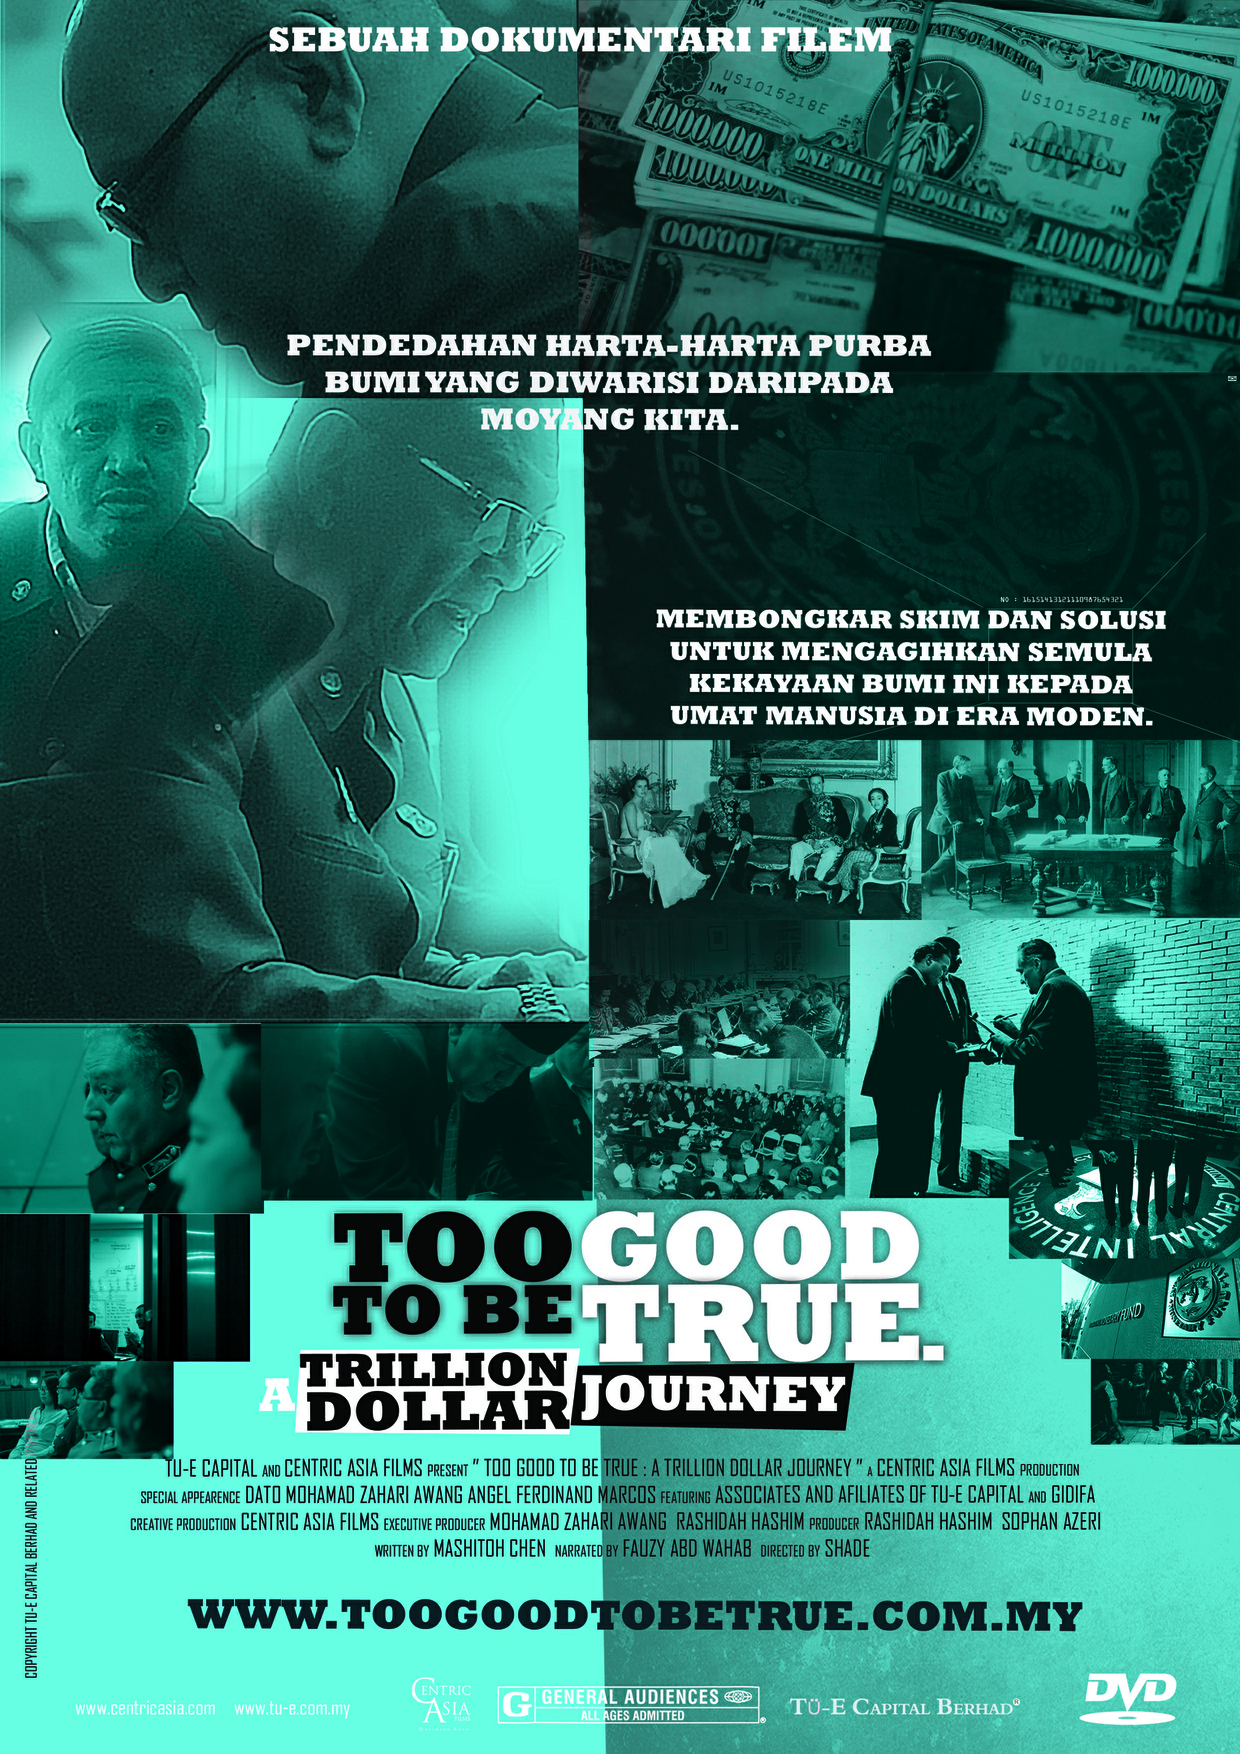 Too Good To Be True, A Trillion Dollar Journey